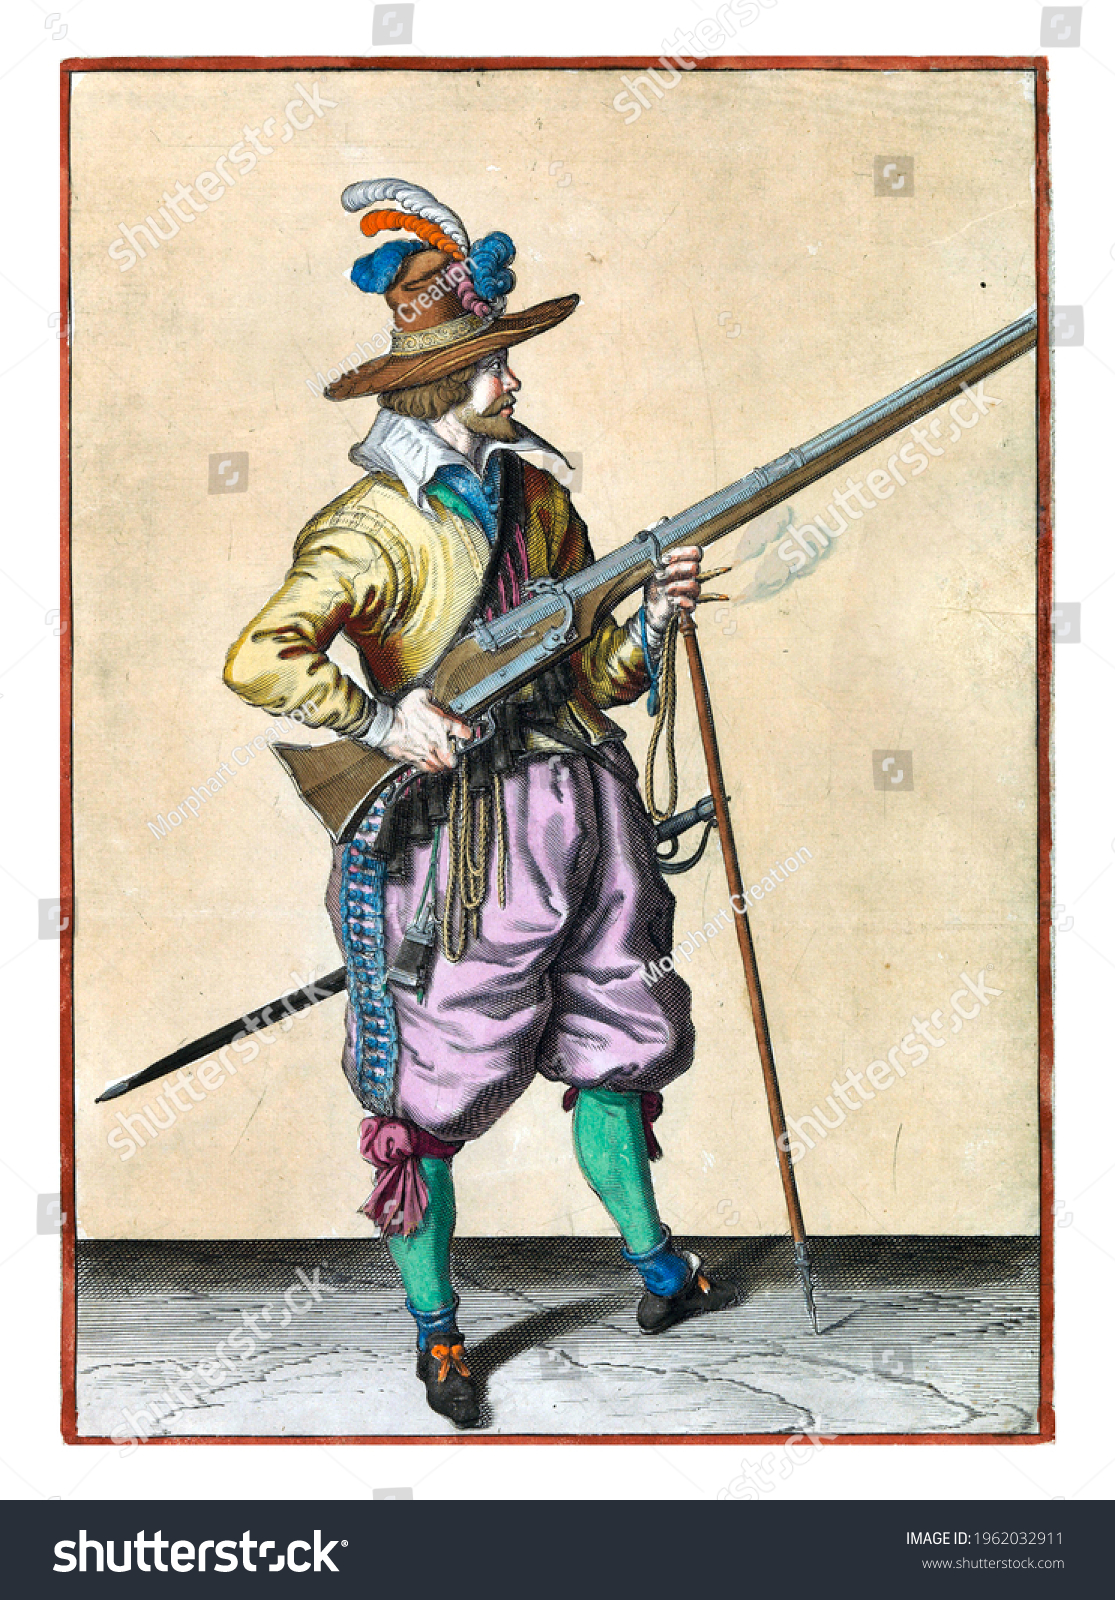 A soldier on guard, full-length, to the right, holding a musket (a certain type of firearm) by his right side, his right index finger on the trigger, his left hand around the fork of the furket #1962032911